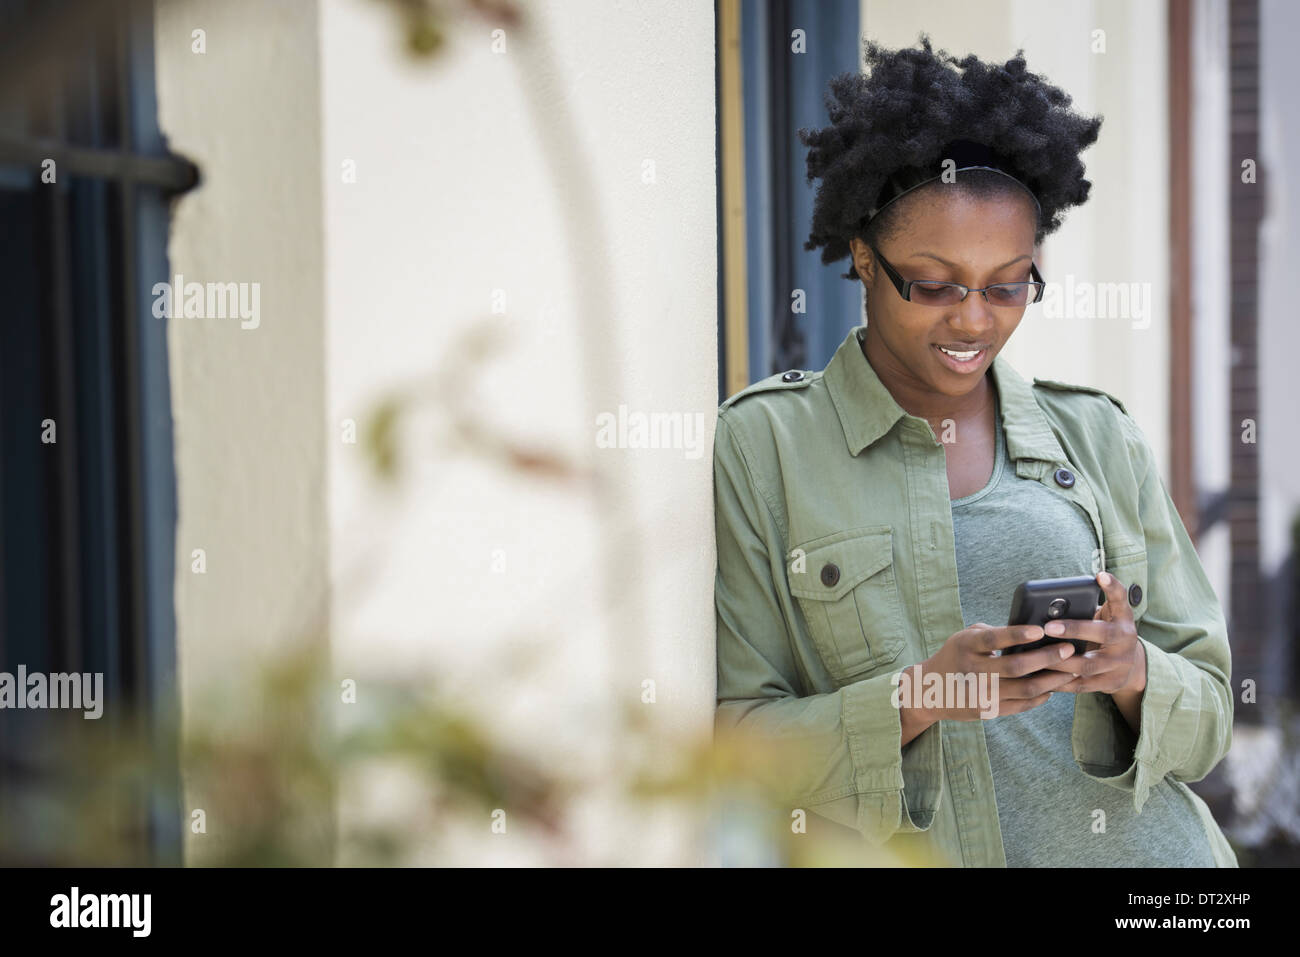 A woman leaning against a doorframe checking her phone - Stock Image